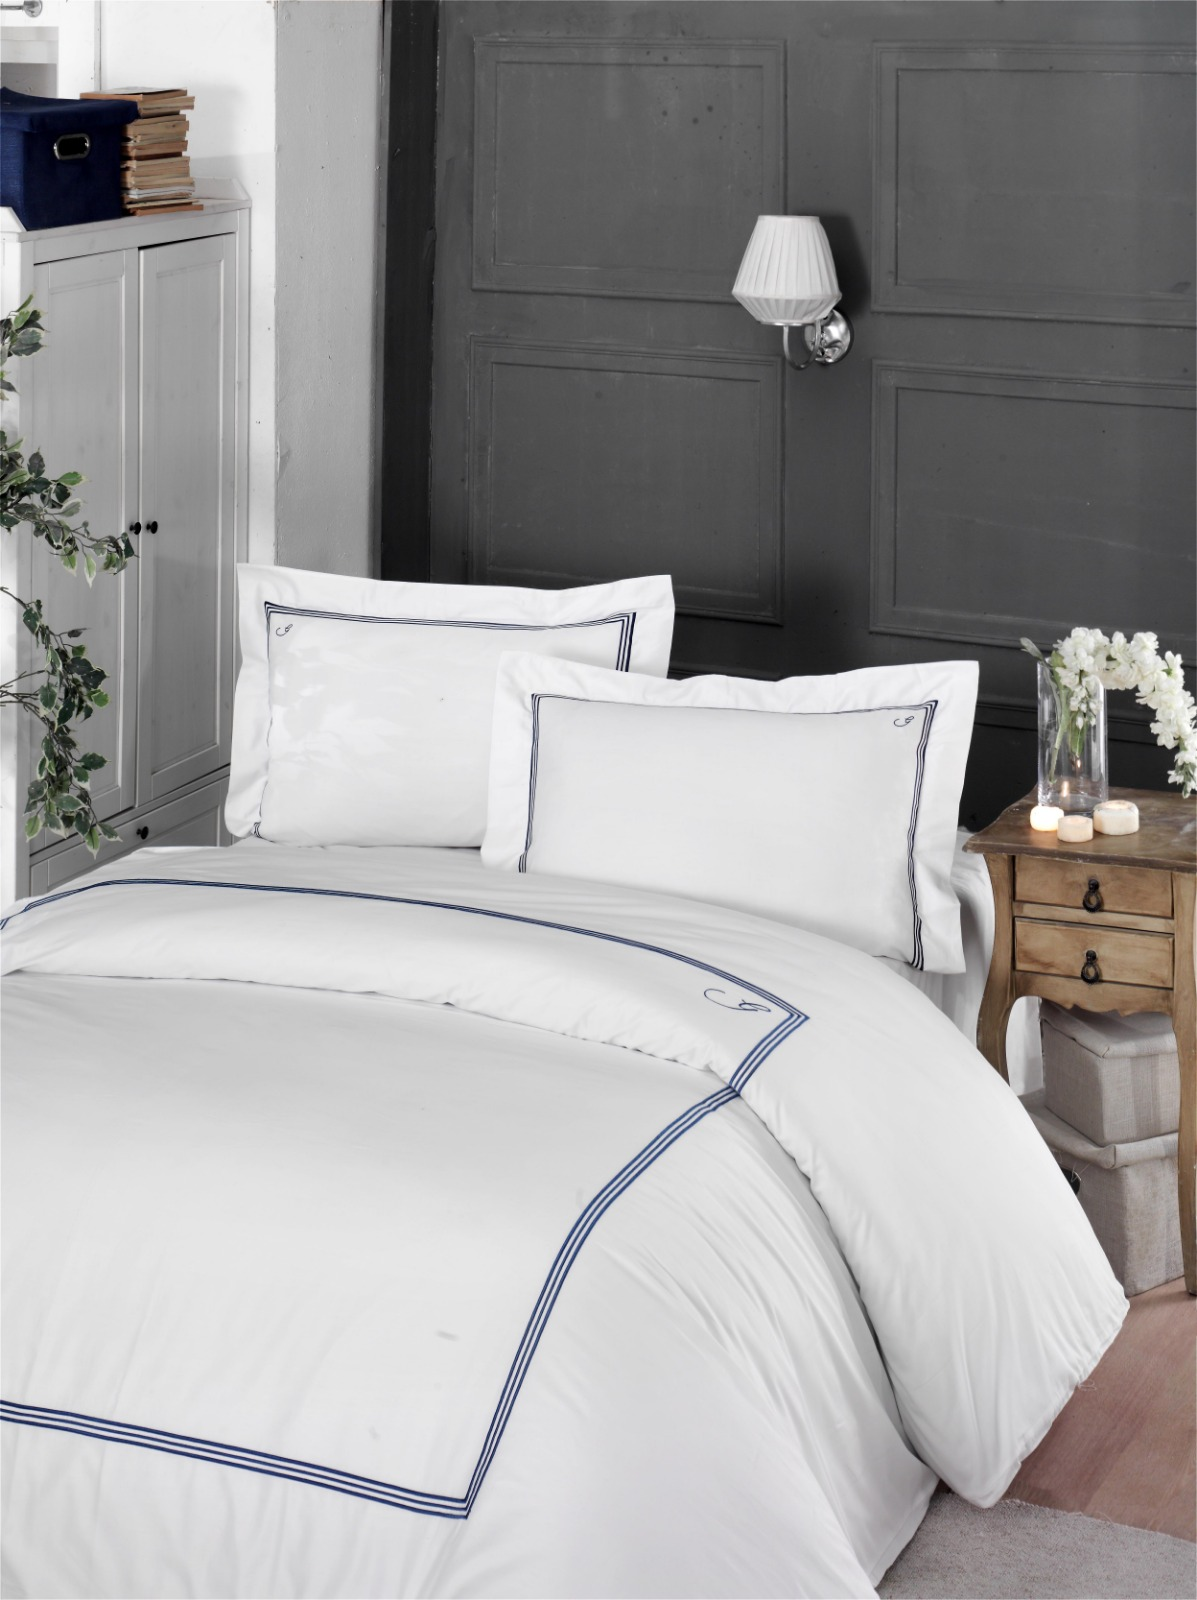 HOTEL BED LINEN SETS WITH NAVY EMBROIDERED